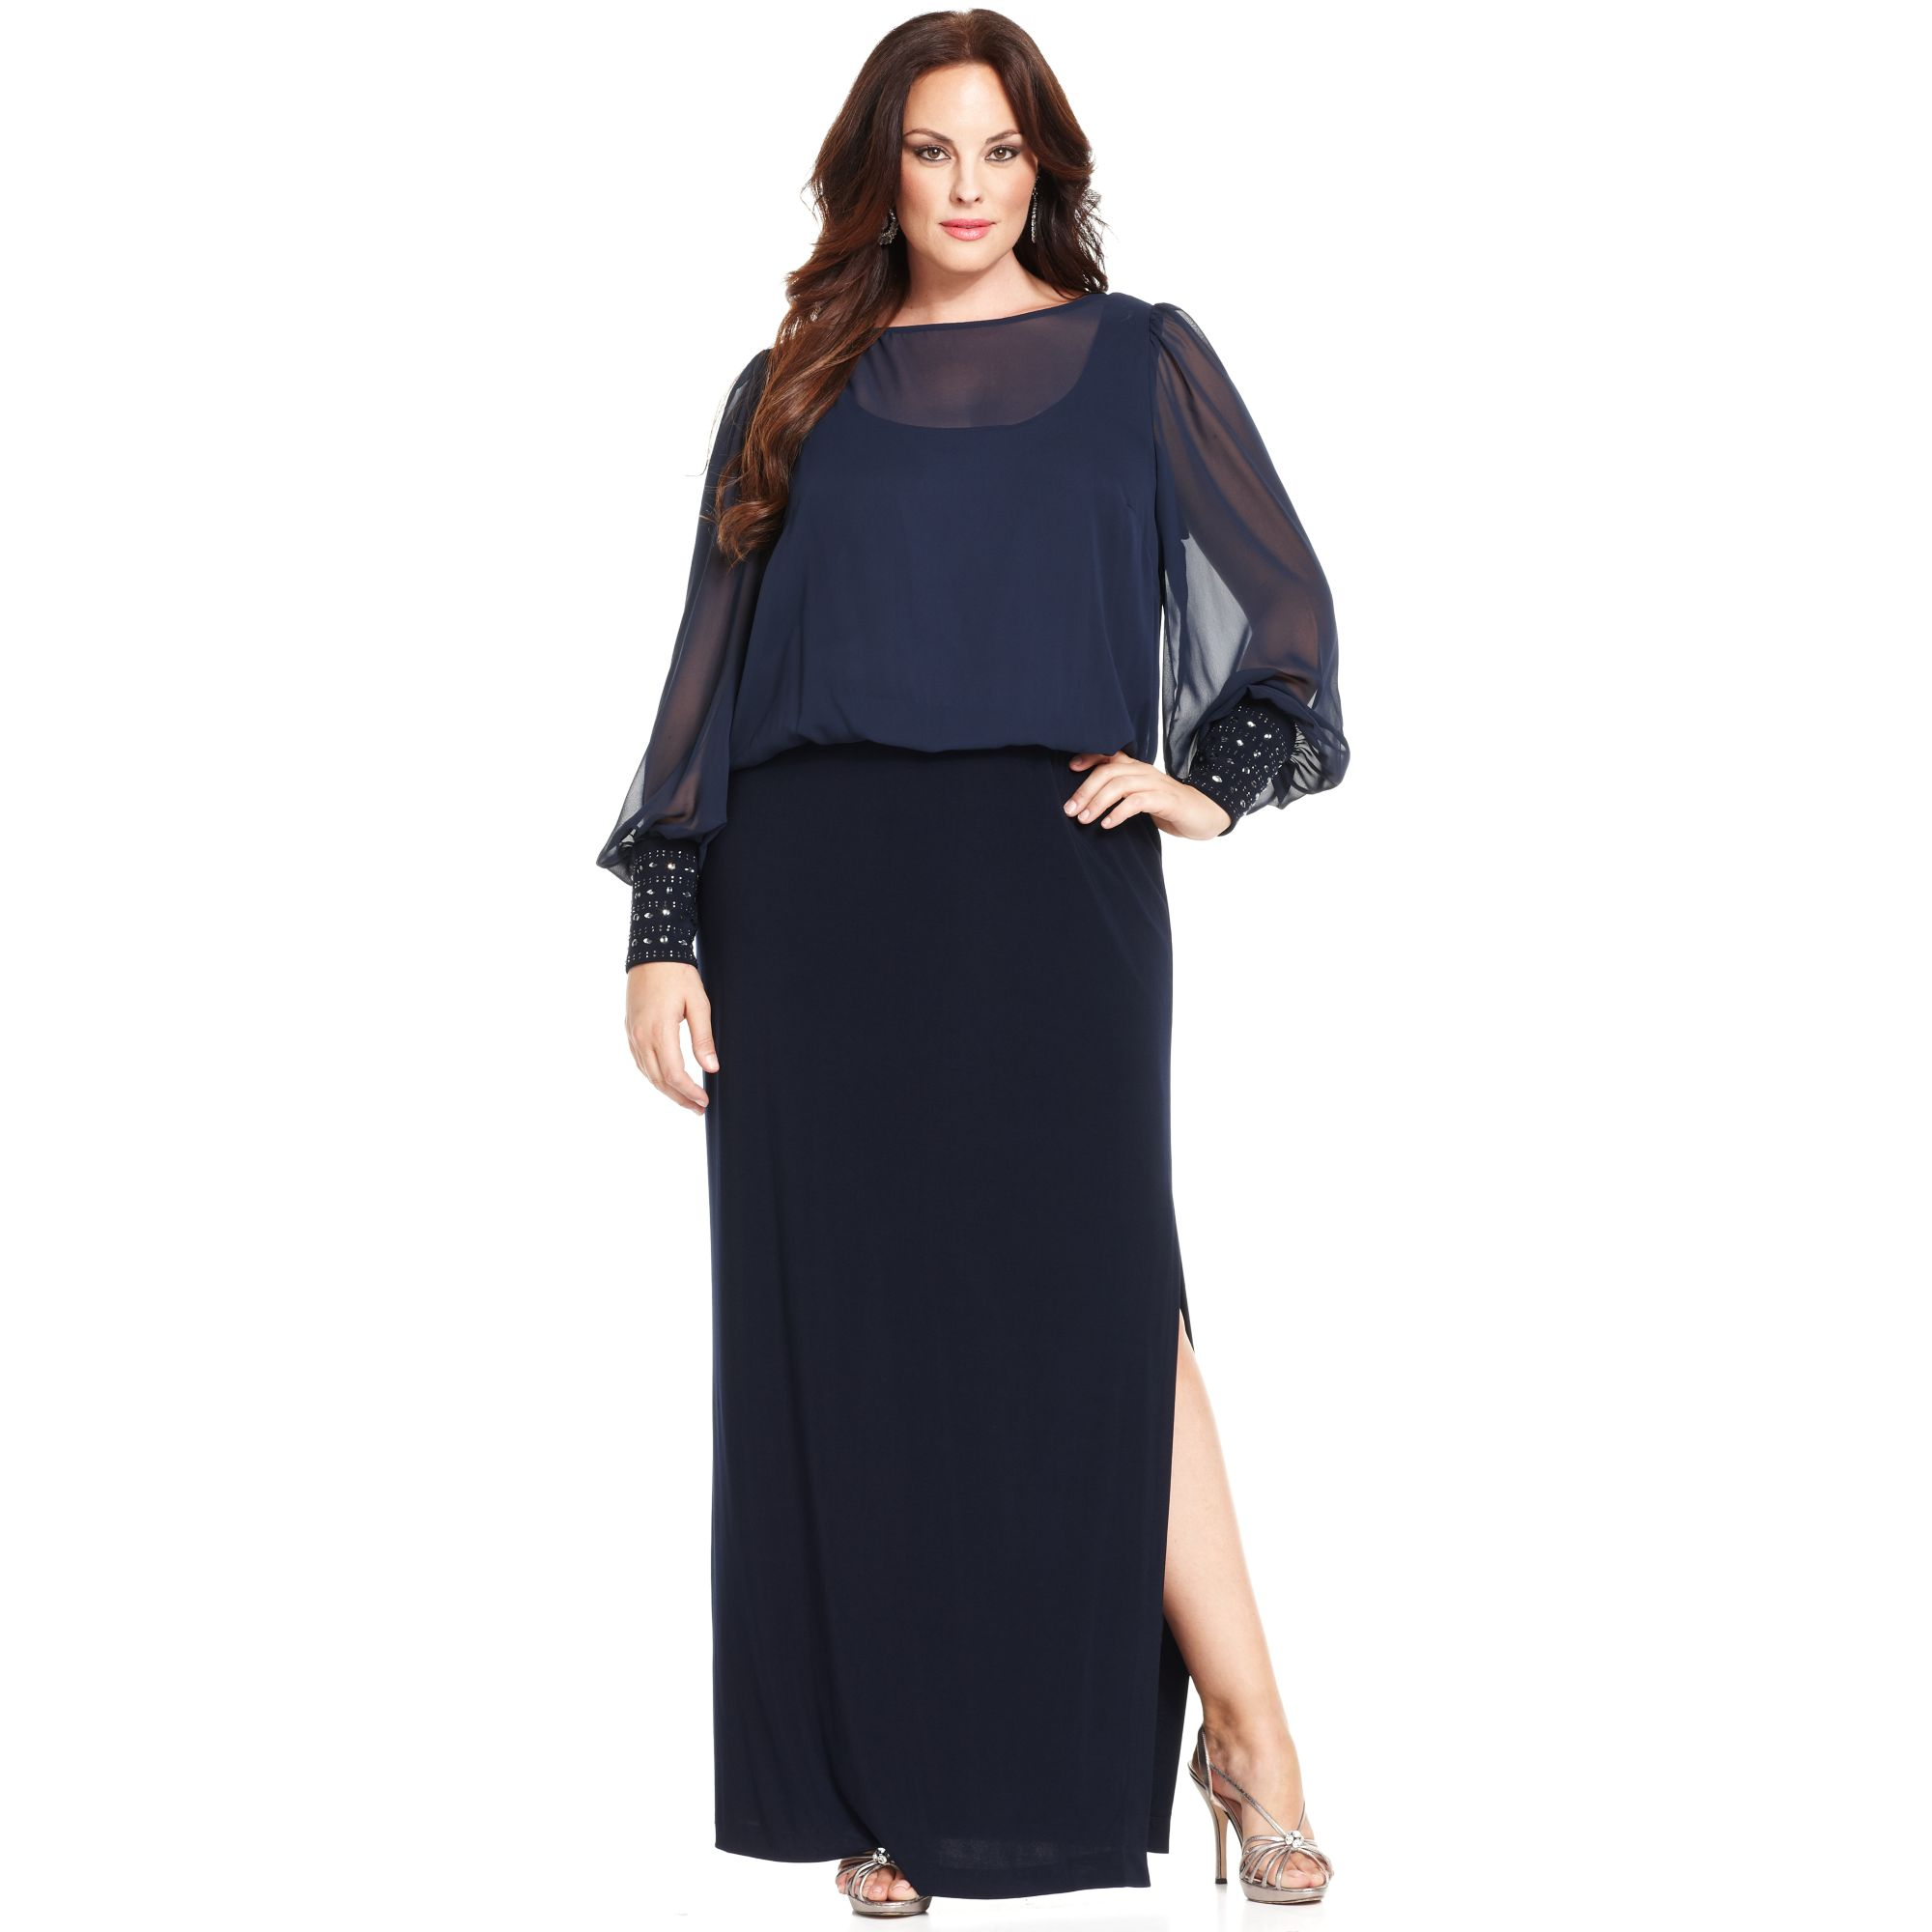 Lyst - Xscape Plus Size Dress Longsleeve Blouson Gown in Blue